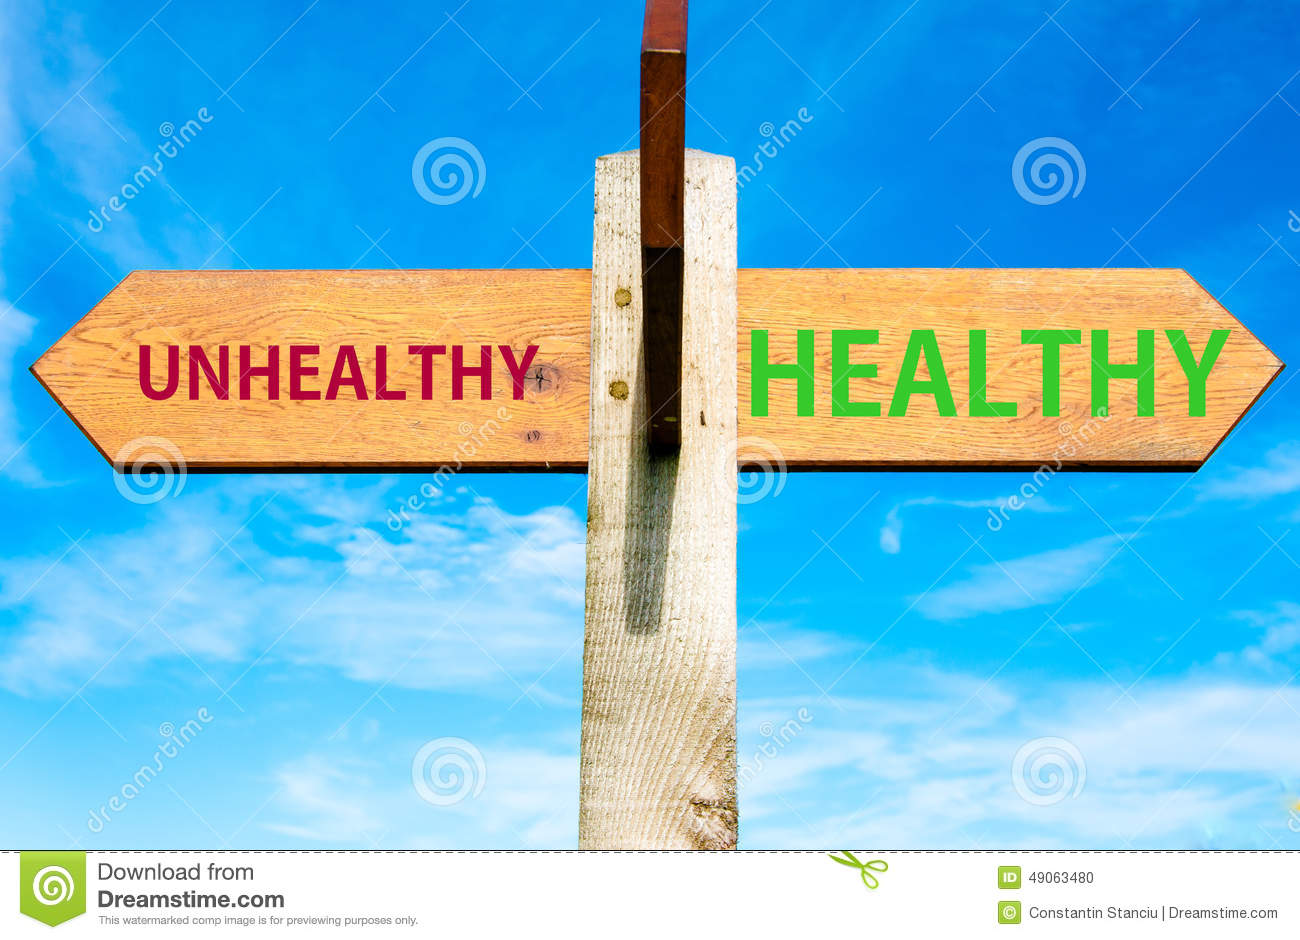 healthy and unhealthy lifestyles A healthy lifestyle isn't just diet and exercise so what is a healthy lifestyle today we go over the components of leading a healthy lifestyle and how it's important to lead a balanced.